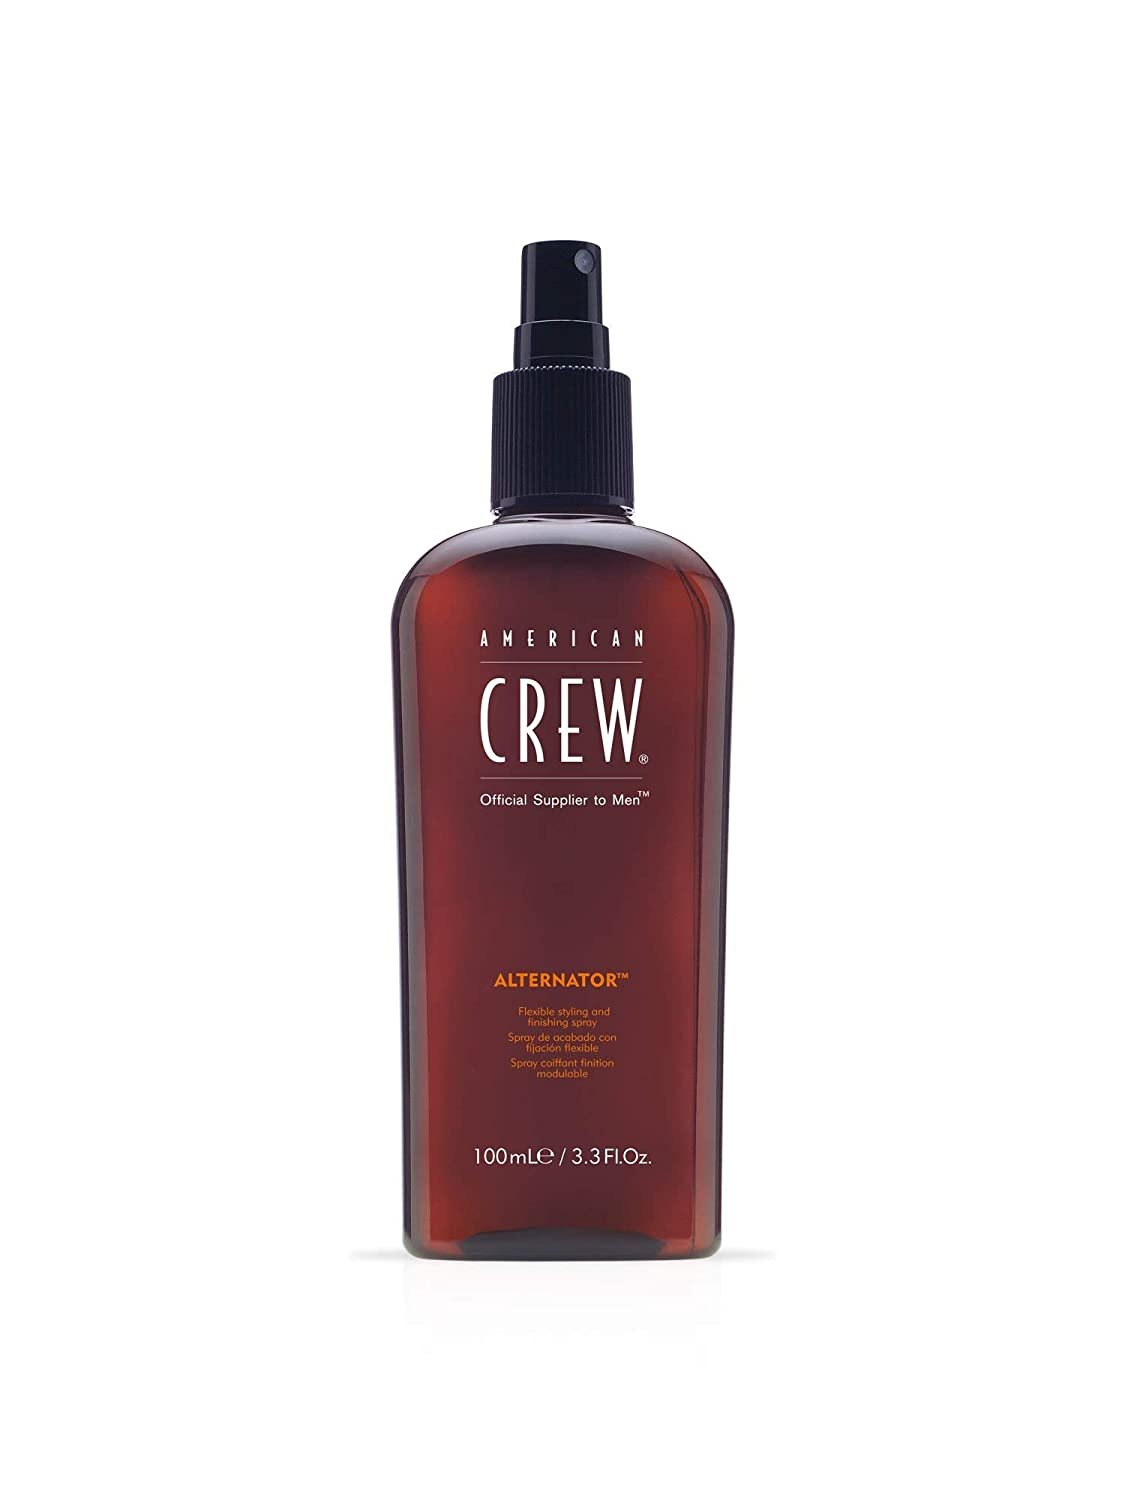 American Crew Alternator Spray de Acabado (Fijación Flexible) 100ml